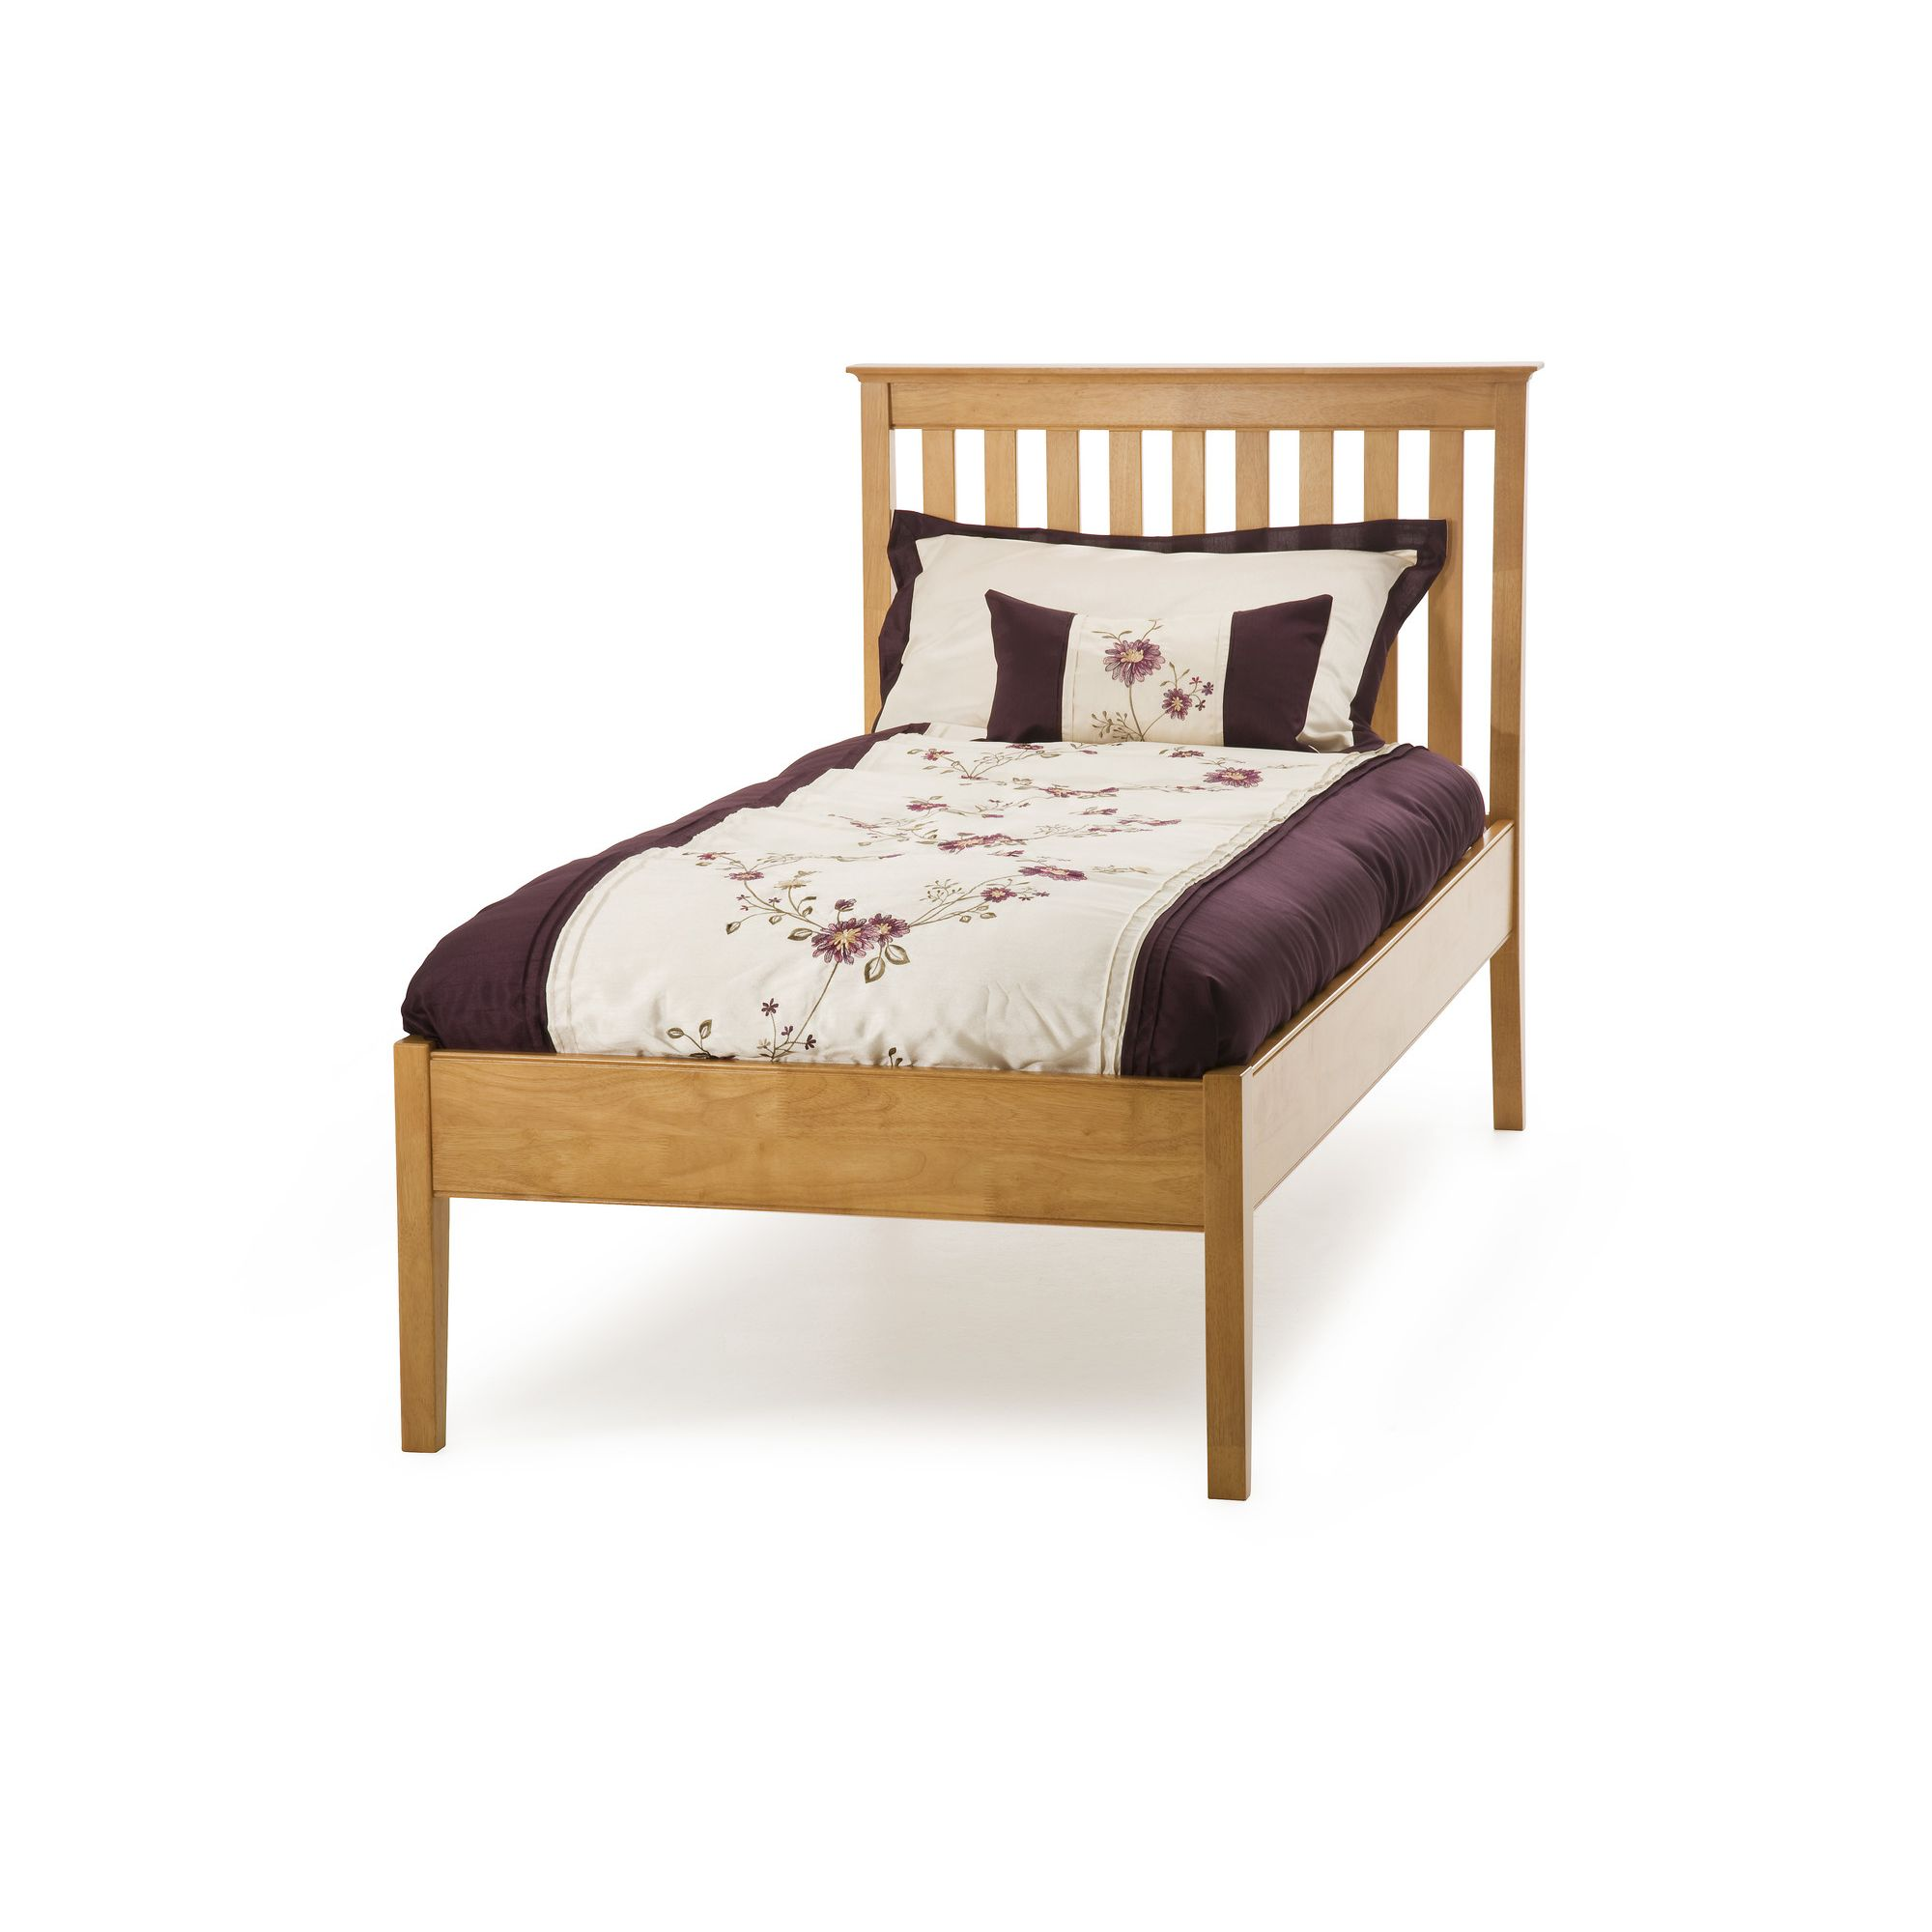 Serene Furnishings Grace Single Guest Bed with Low Foot End - Golden Cherry at Tesco Direct